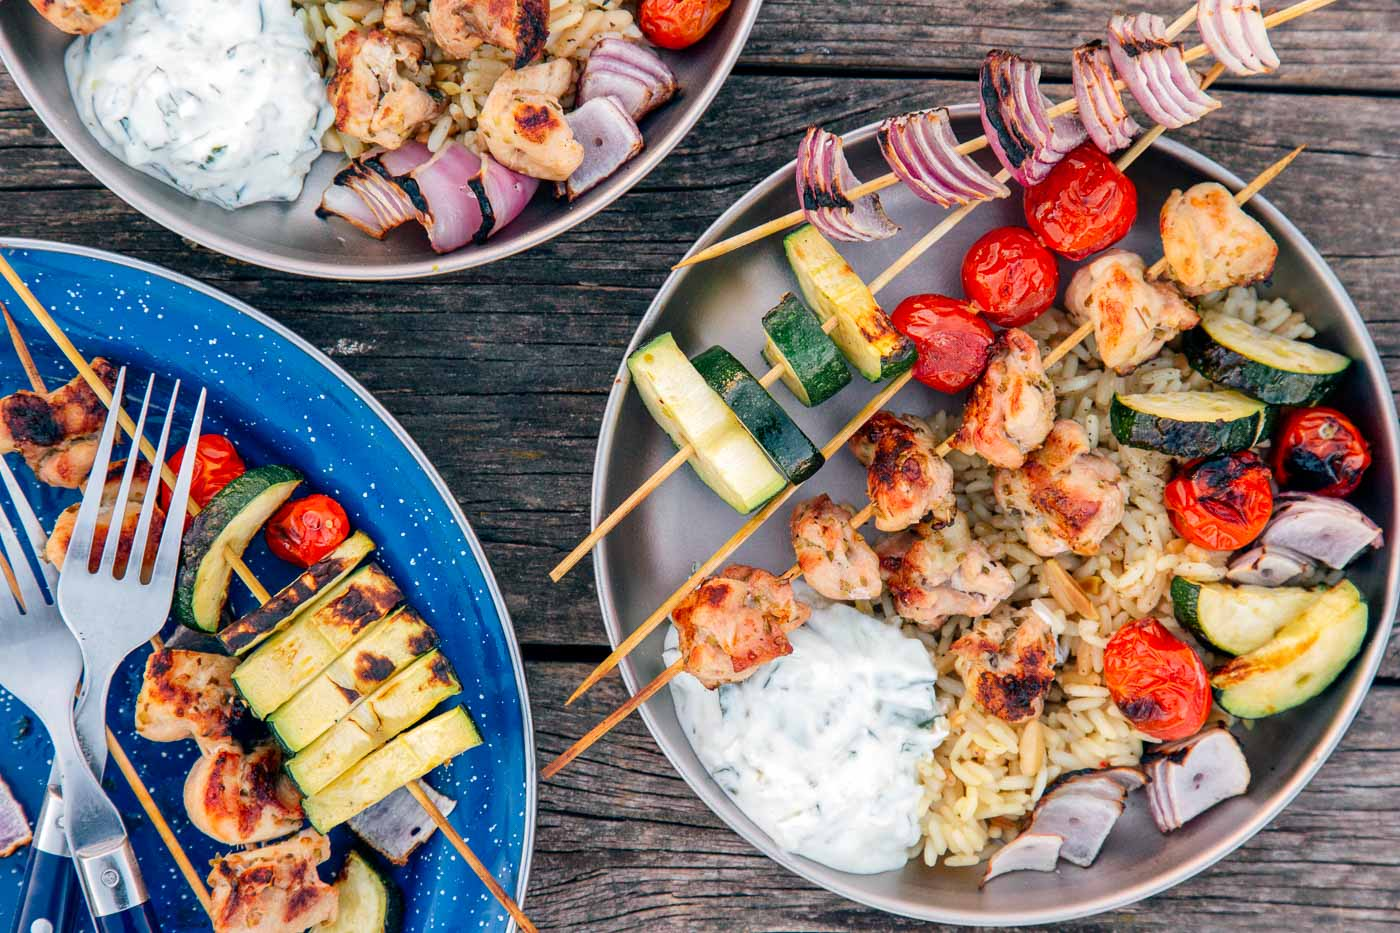 Grilled chicken kabobs on blue and silver camping plates.